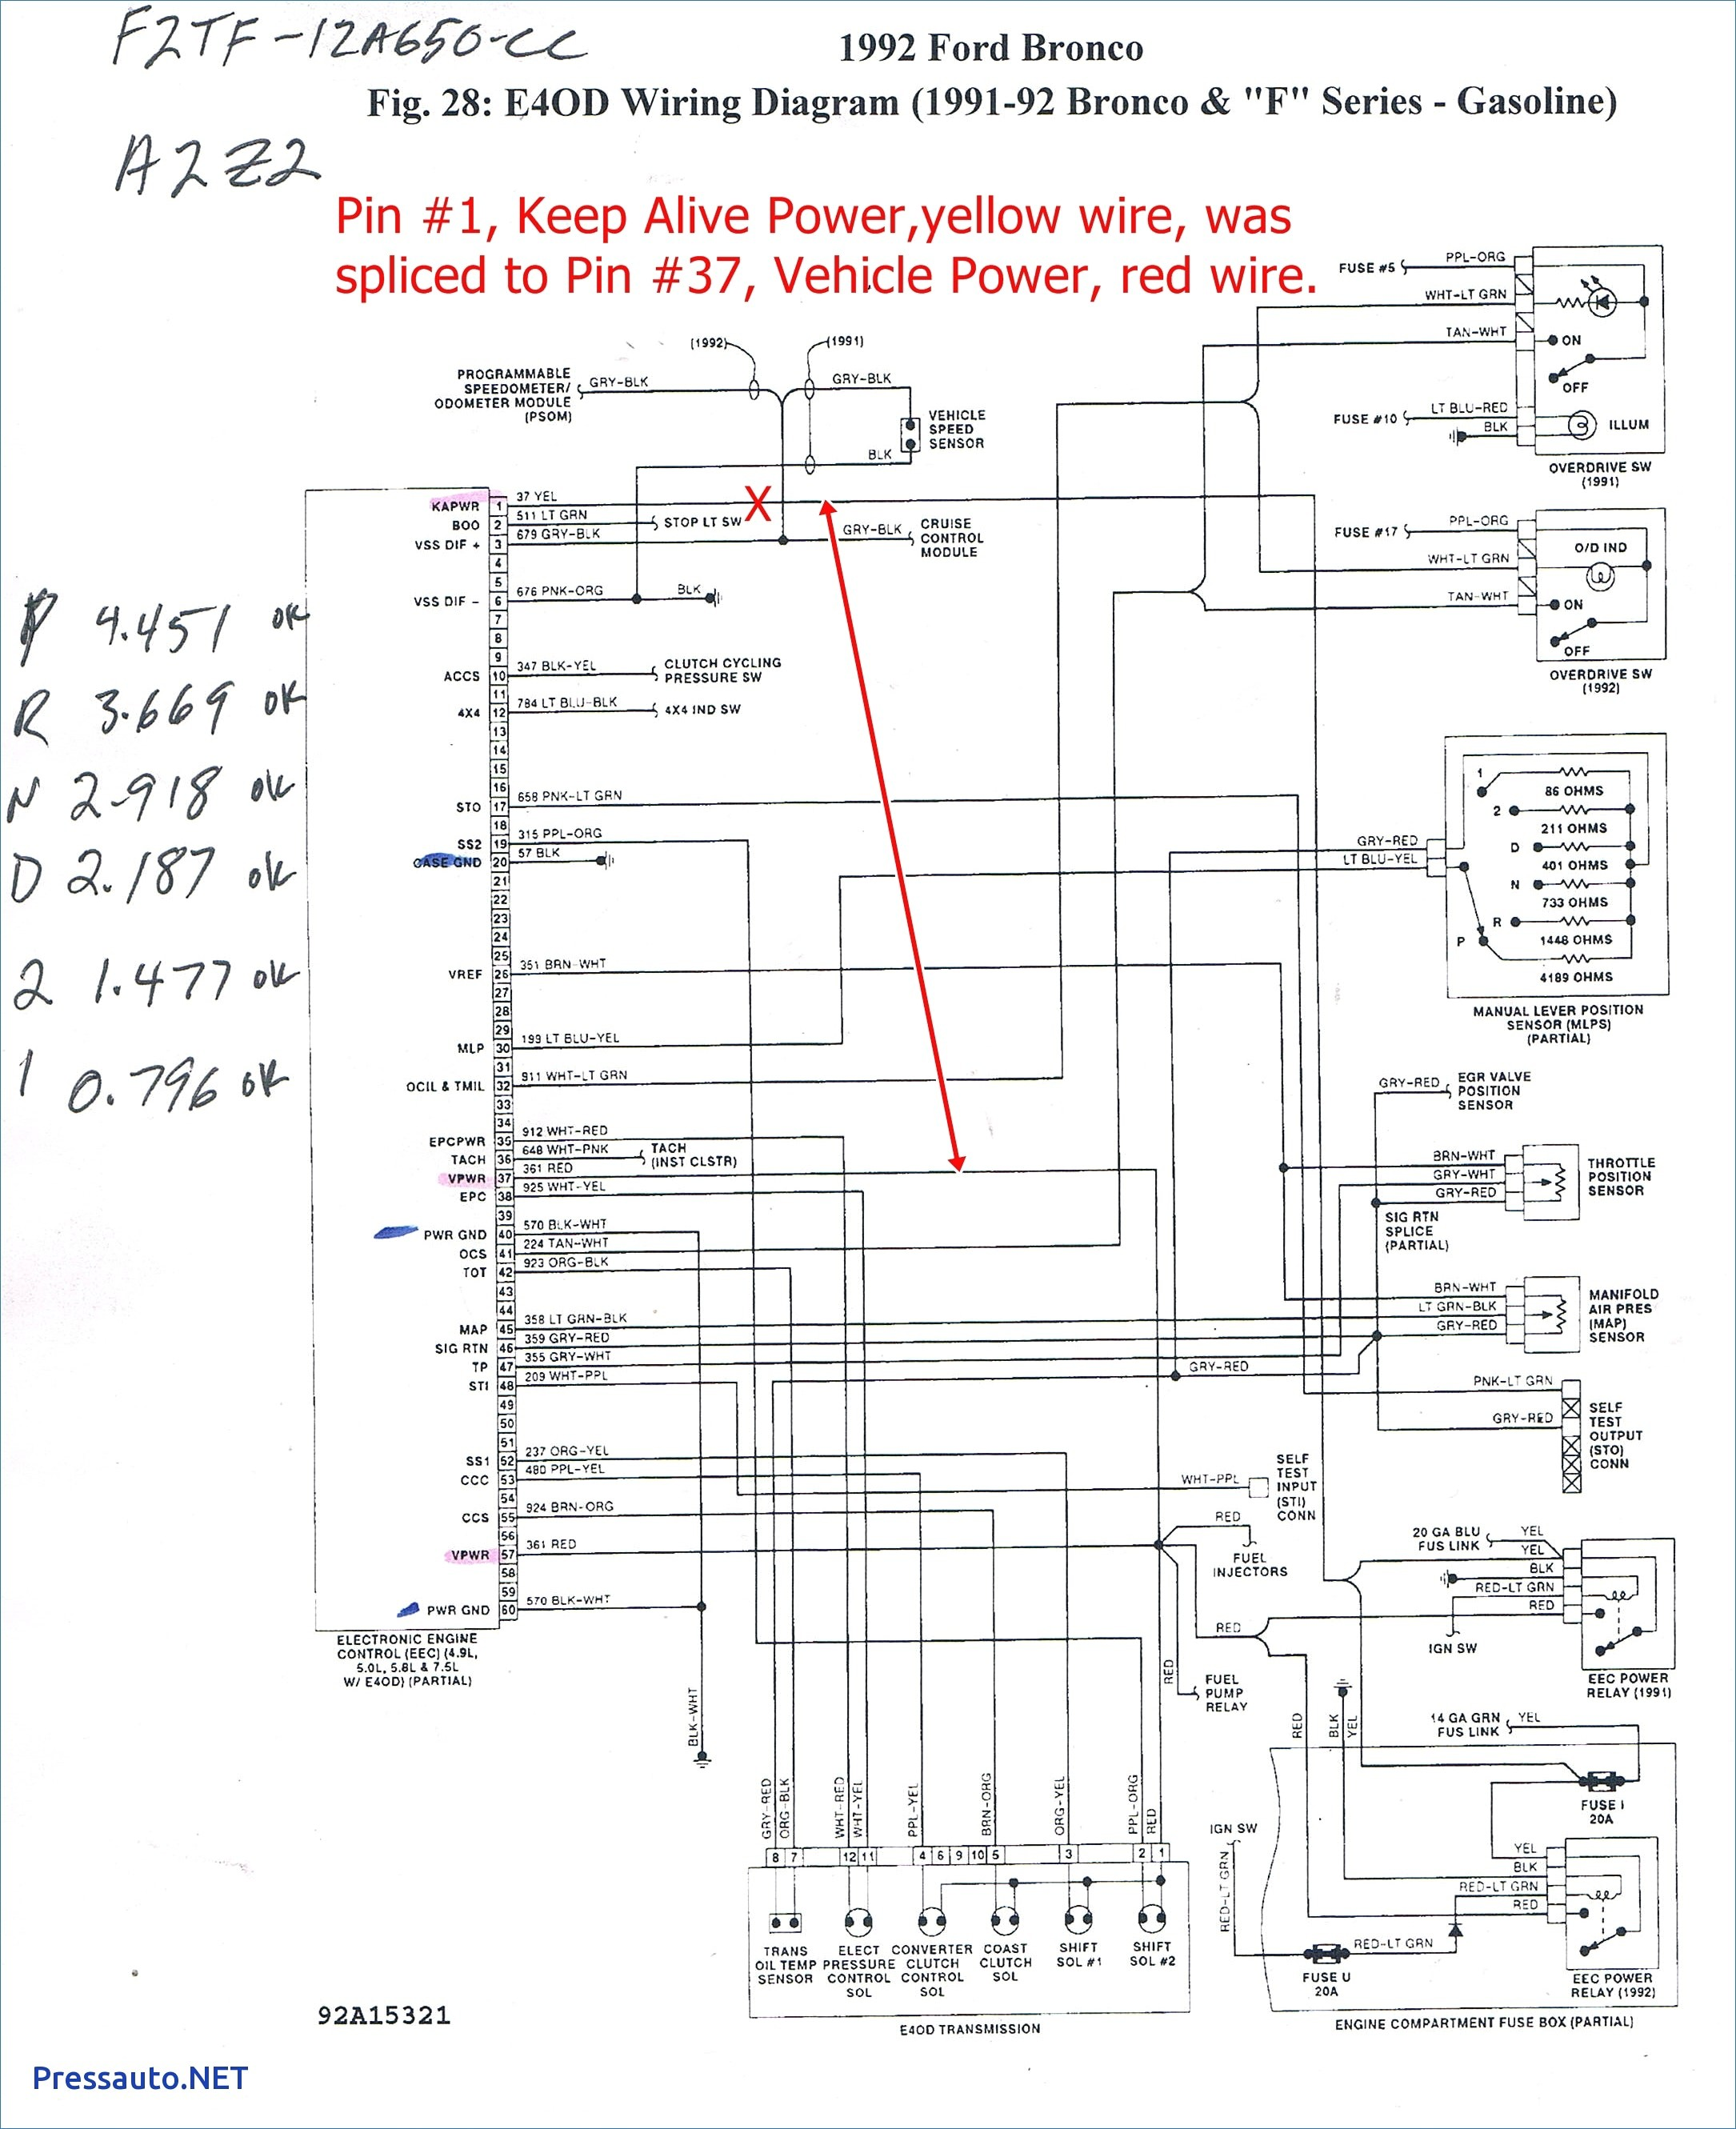 2001 ford Taurus Engine Diagram Mercury Sable Wiring Diagram Headlight  Spark Plug 2002 Power Window Of